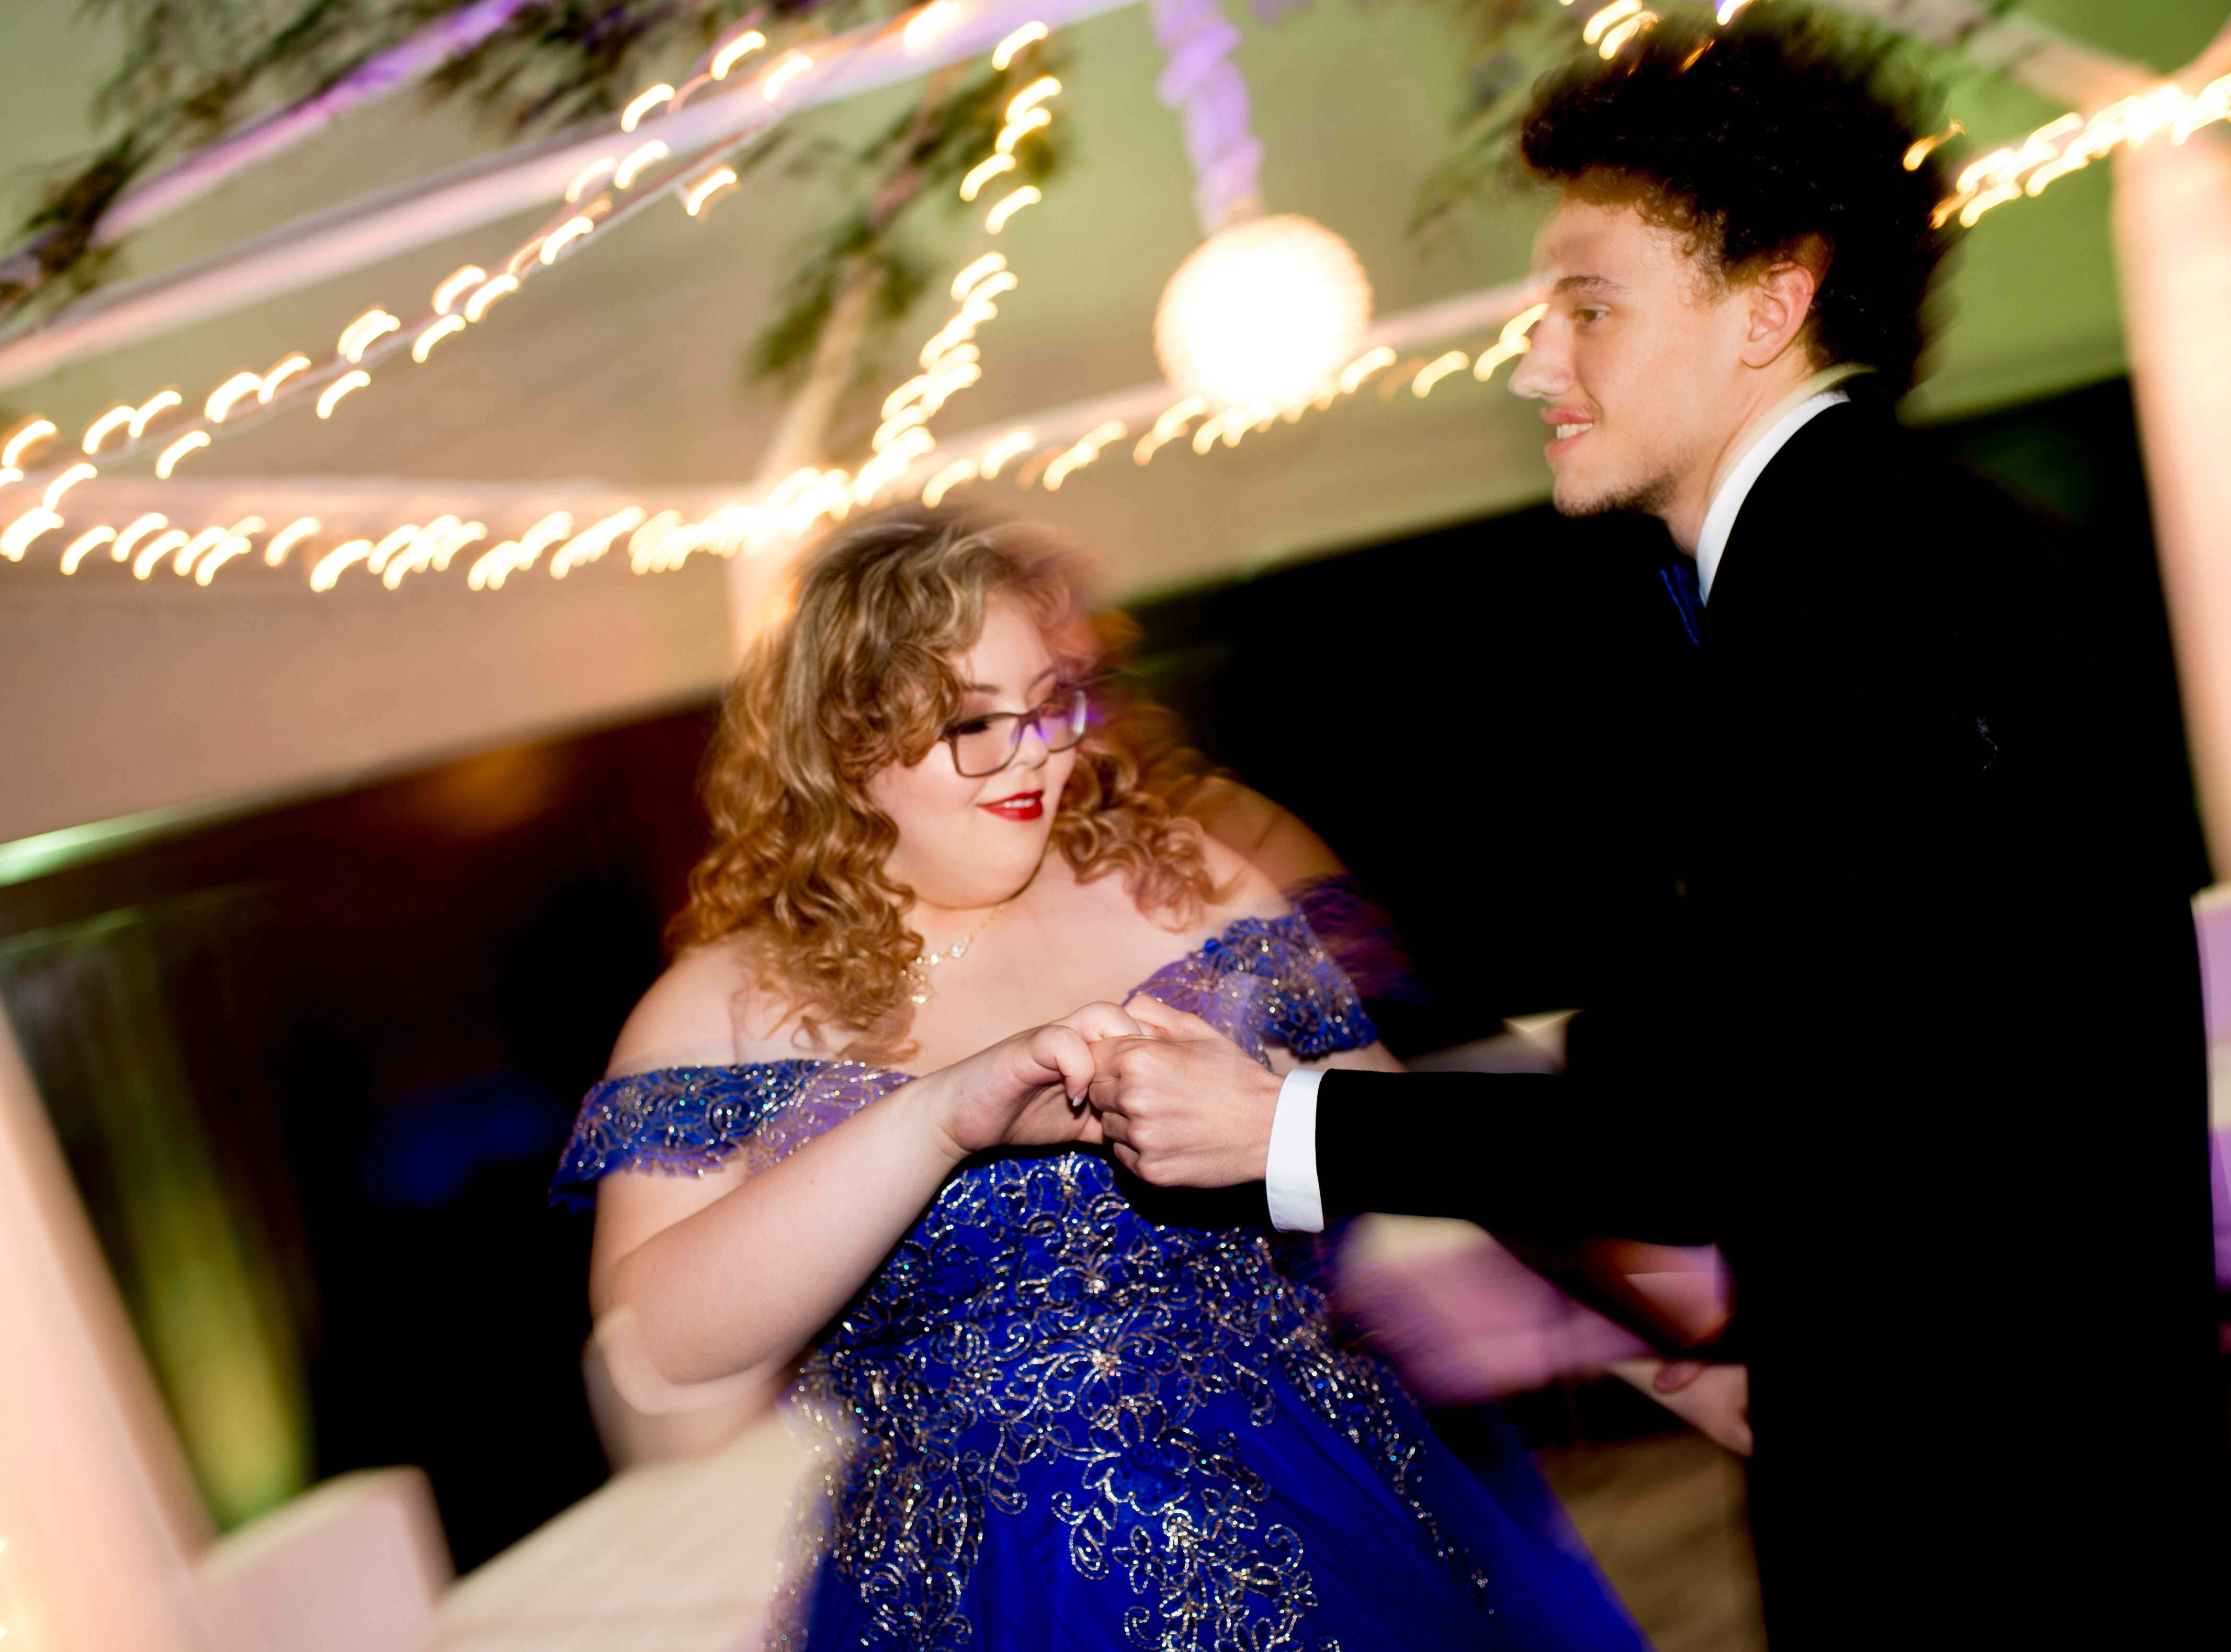 Scenes from the Hardin Valley Academy prom at The Venue in Lenoir City, Tennessee on Saturday, April 6, 2019.